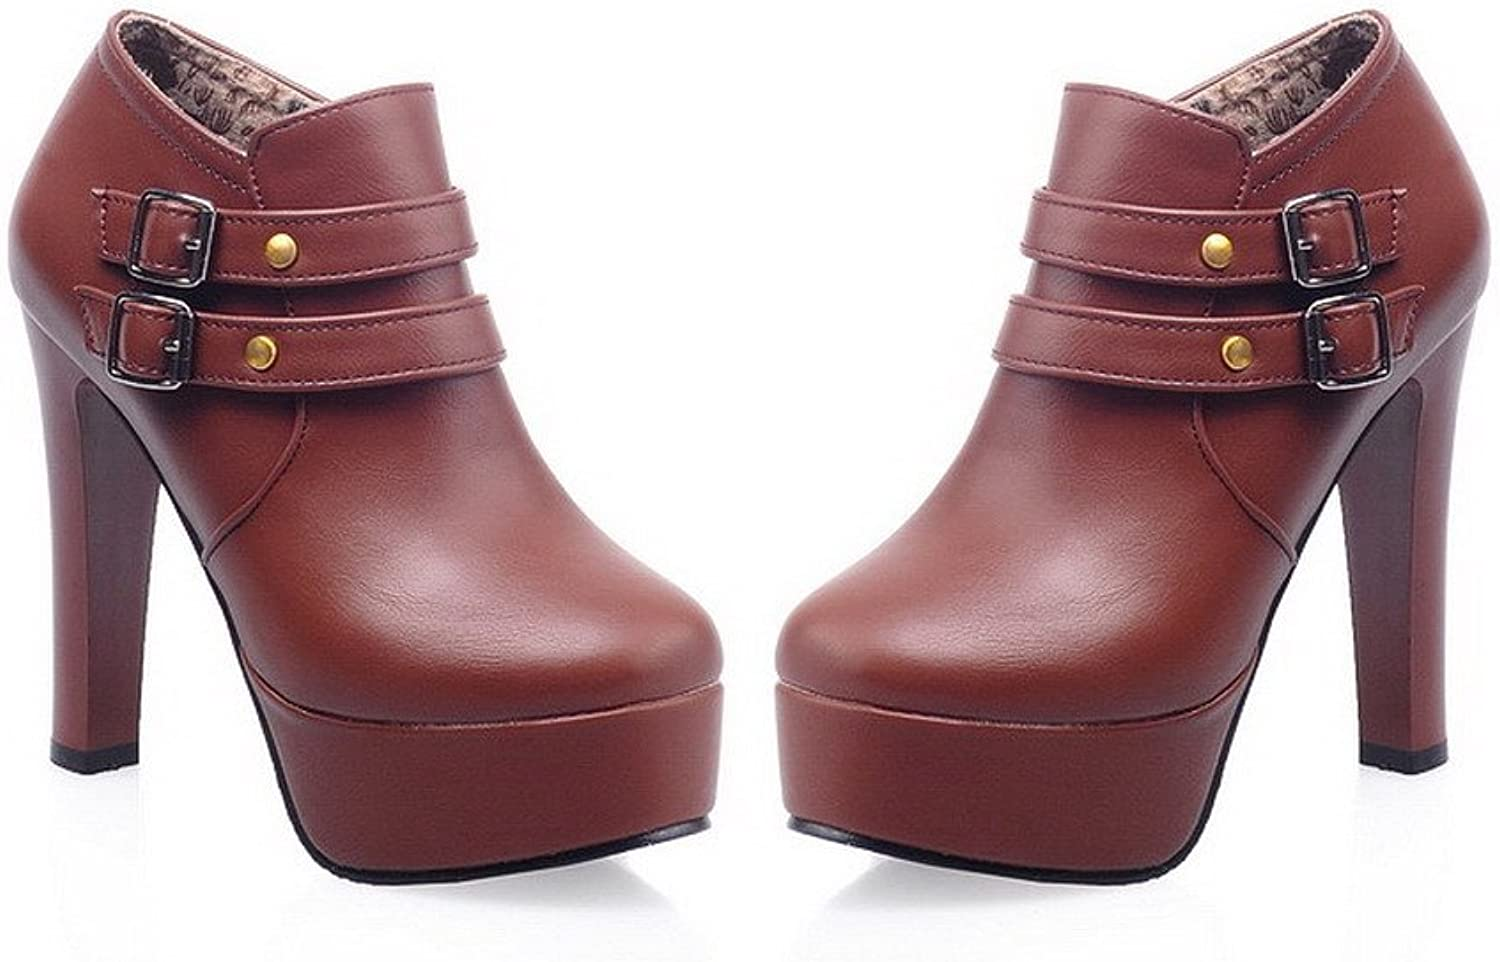 WeiPoot Womens Round Closed Toe High Heels PU Solid Boots with Metal Nail and Buckle